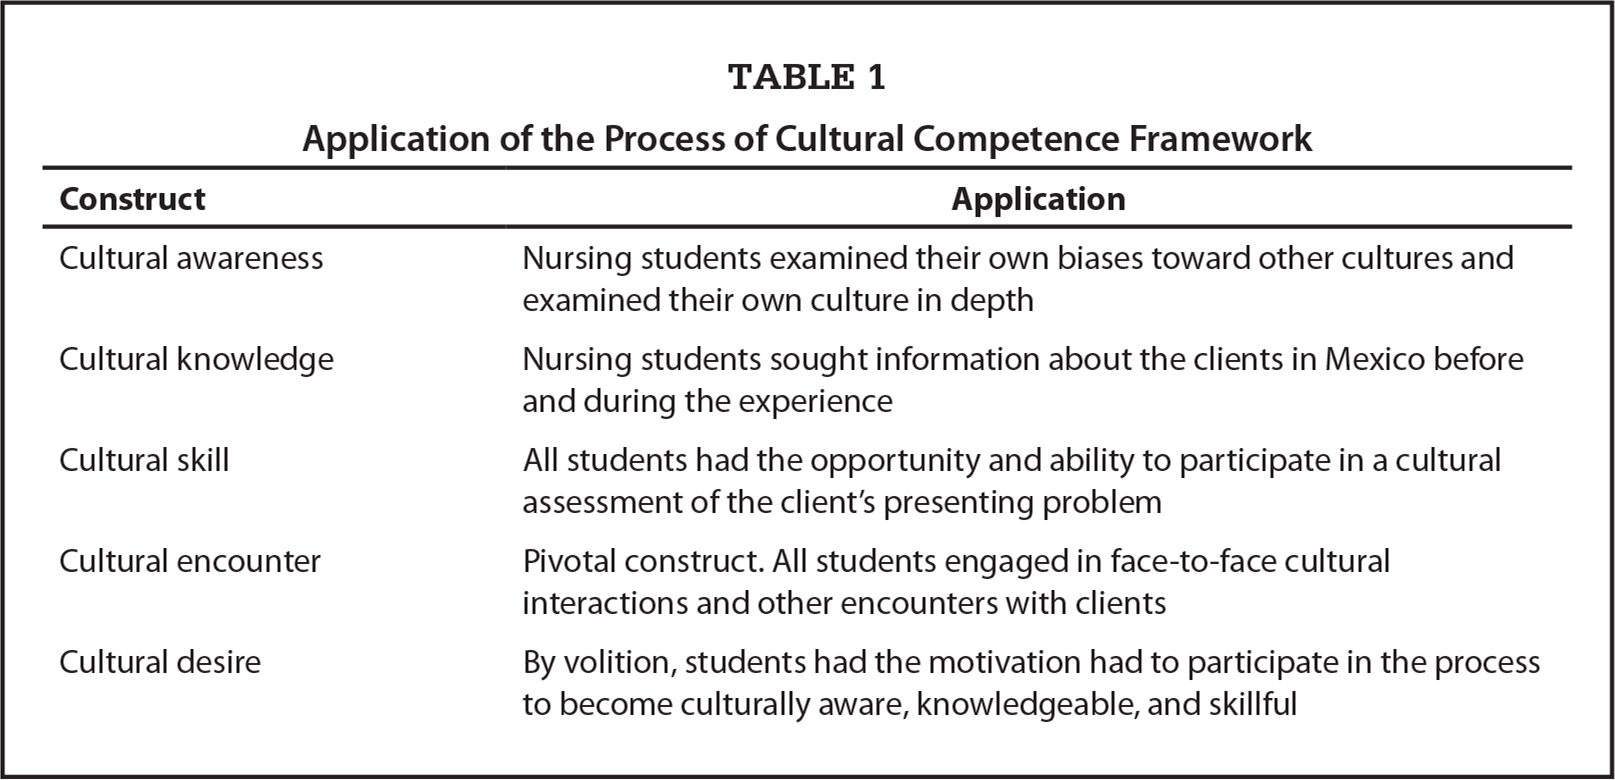 Application of the Process of Cultural Competence Framework